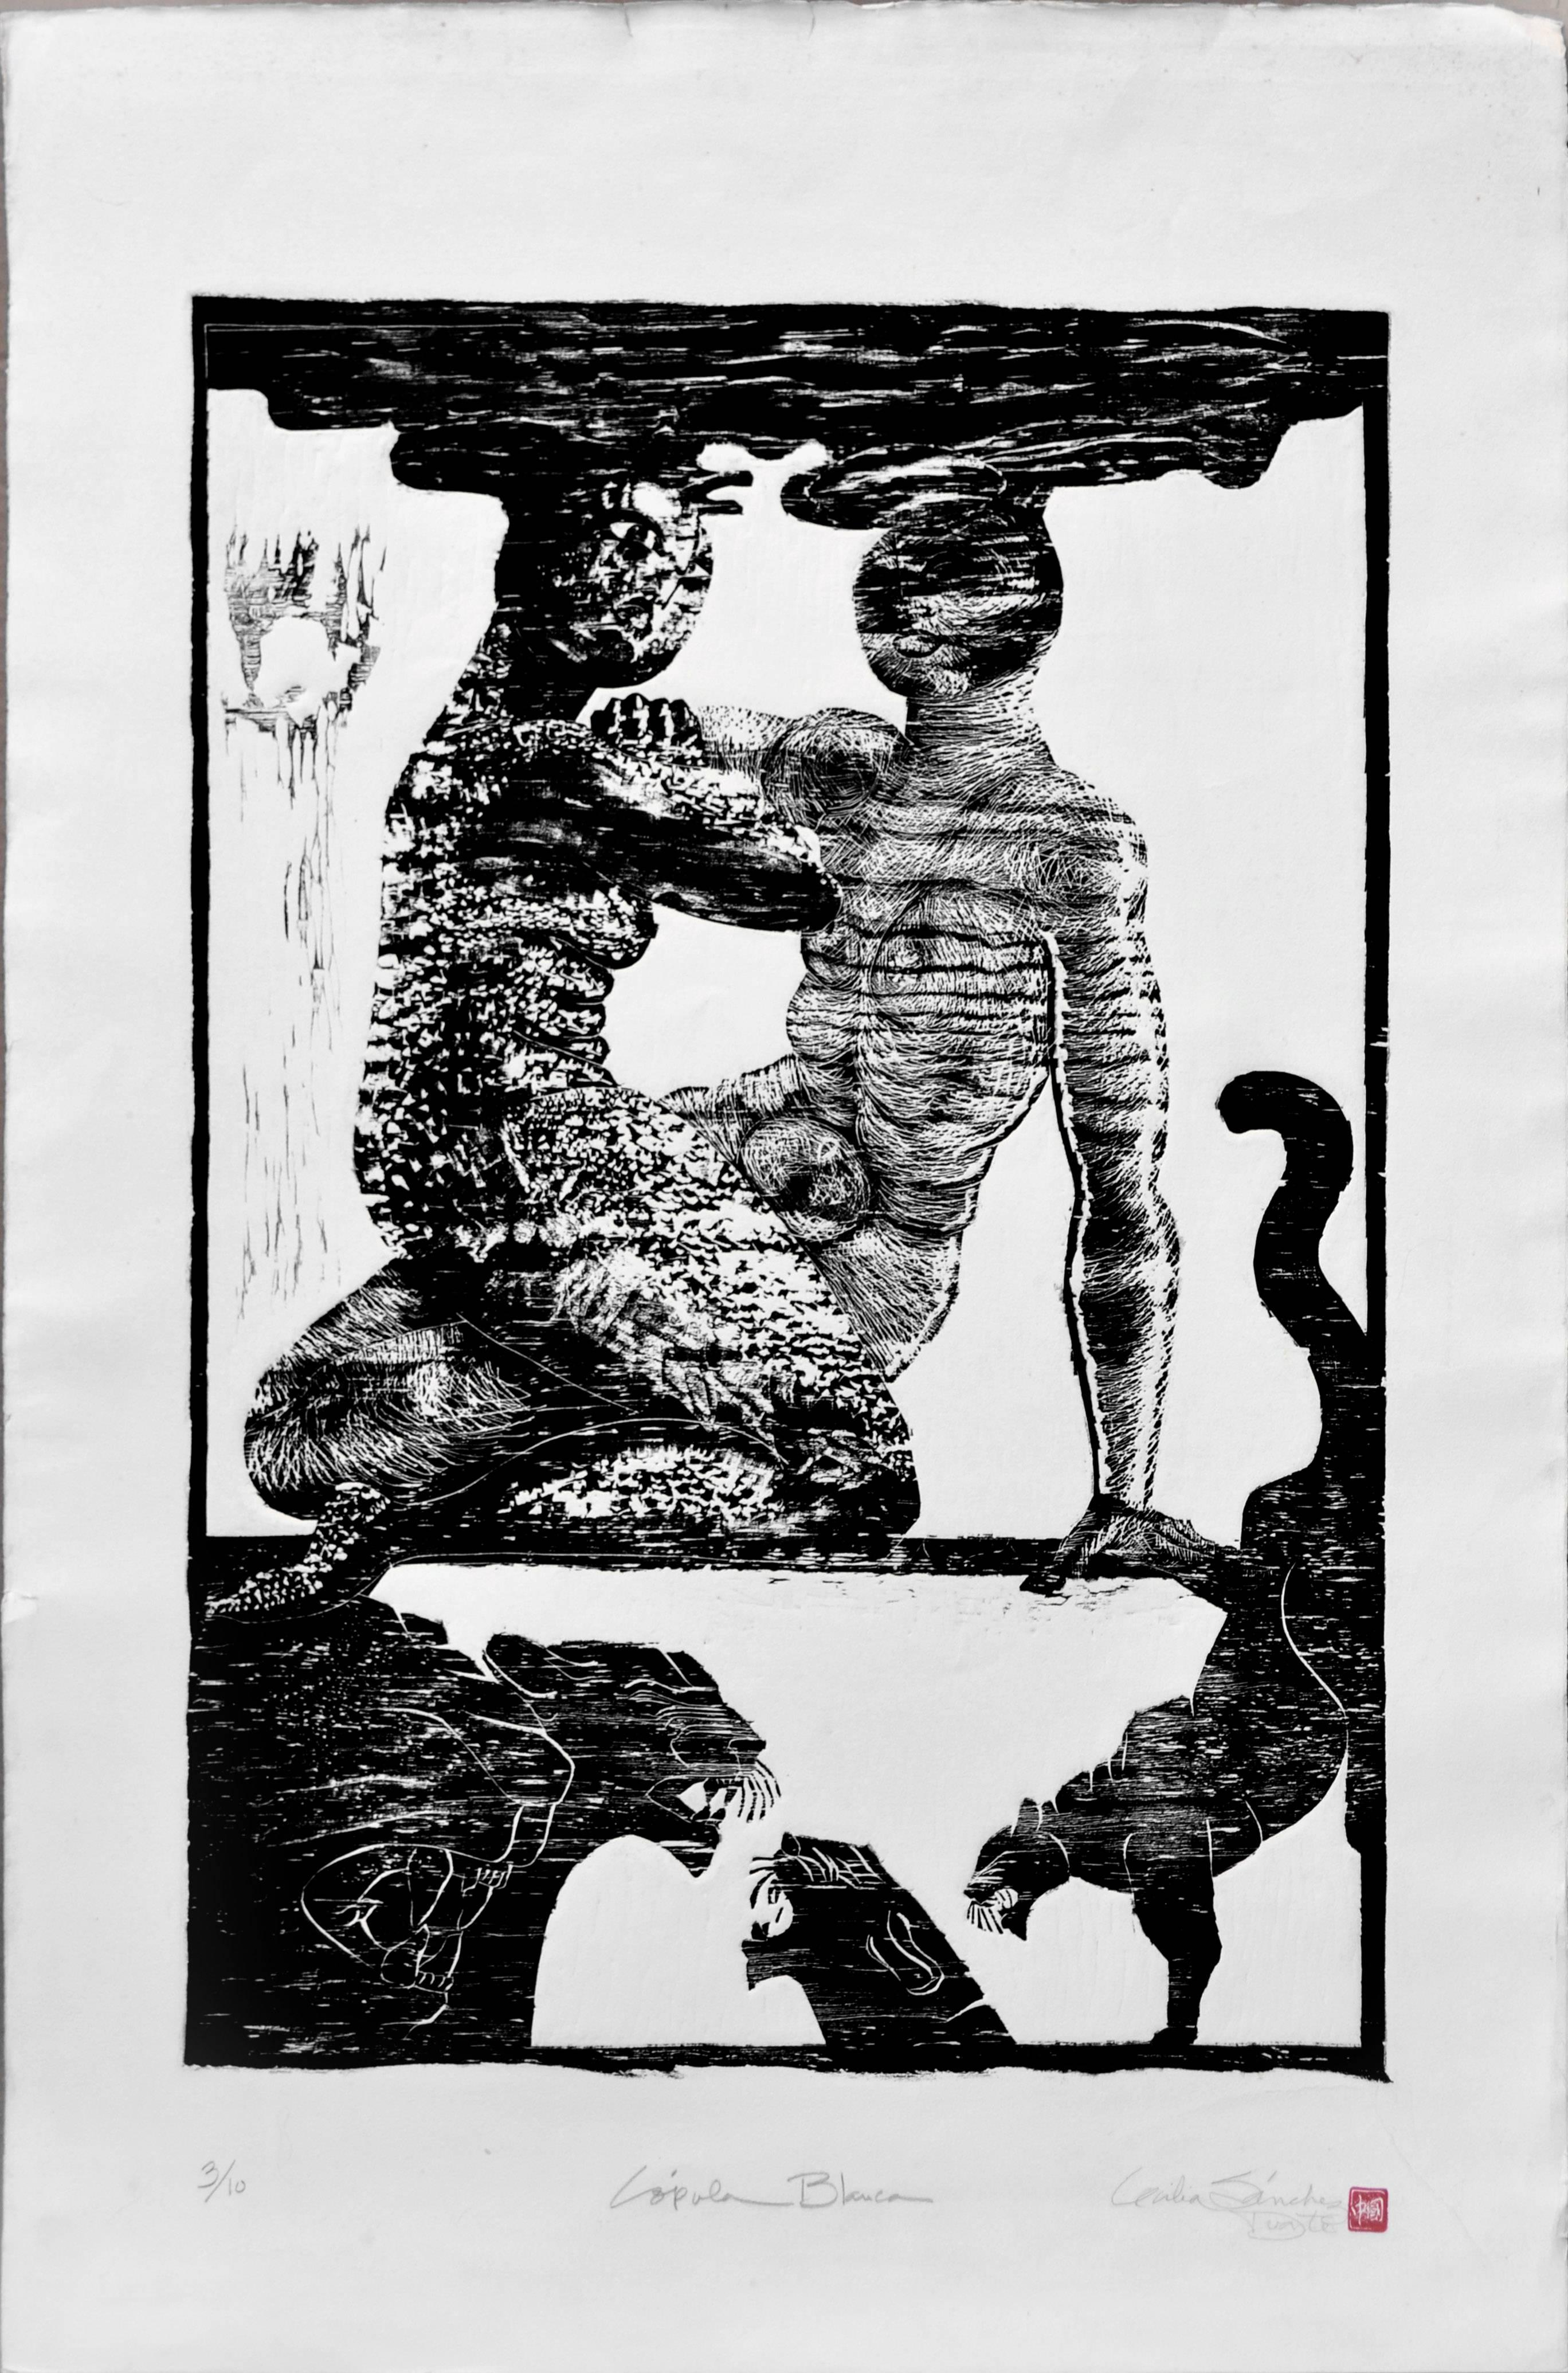 Panther - Figurative Abstract Woodcut